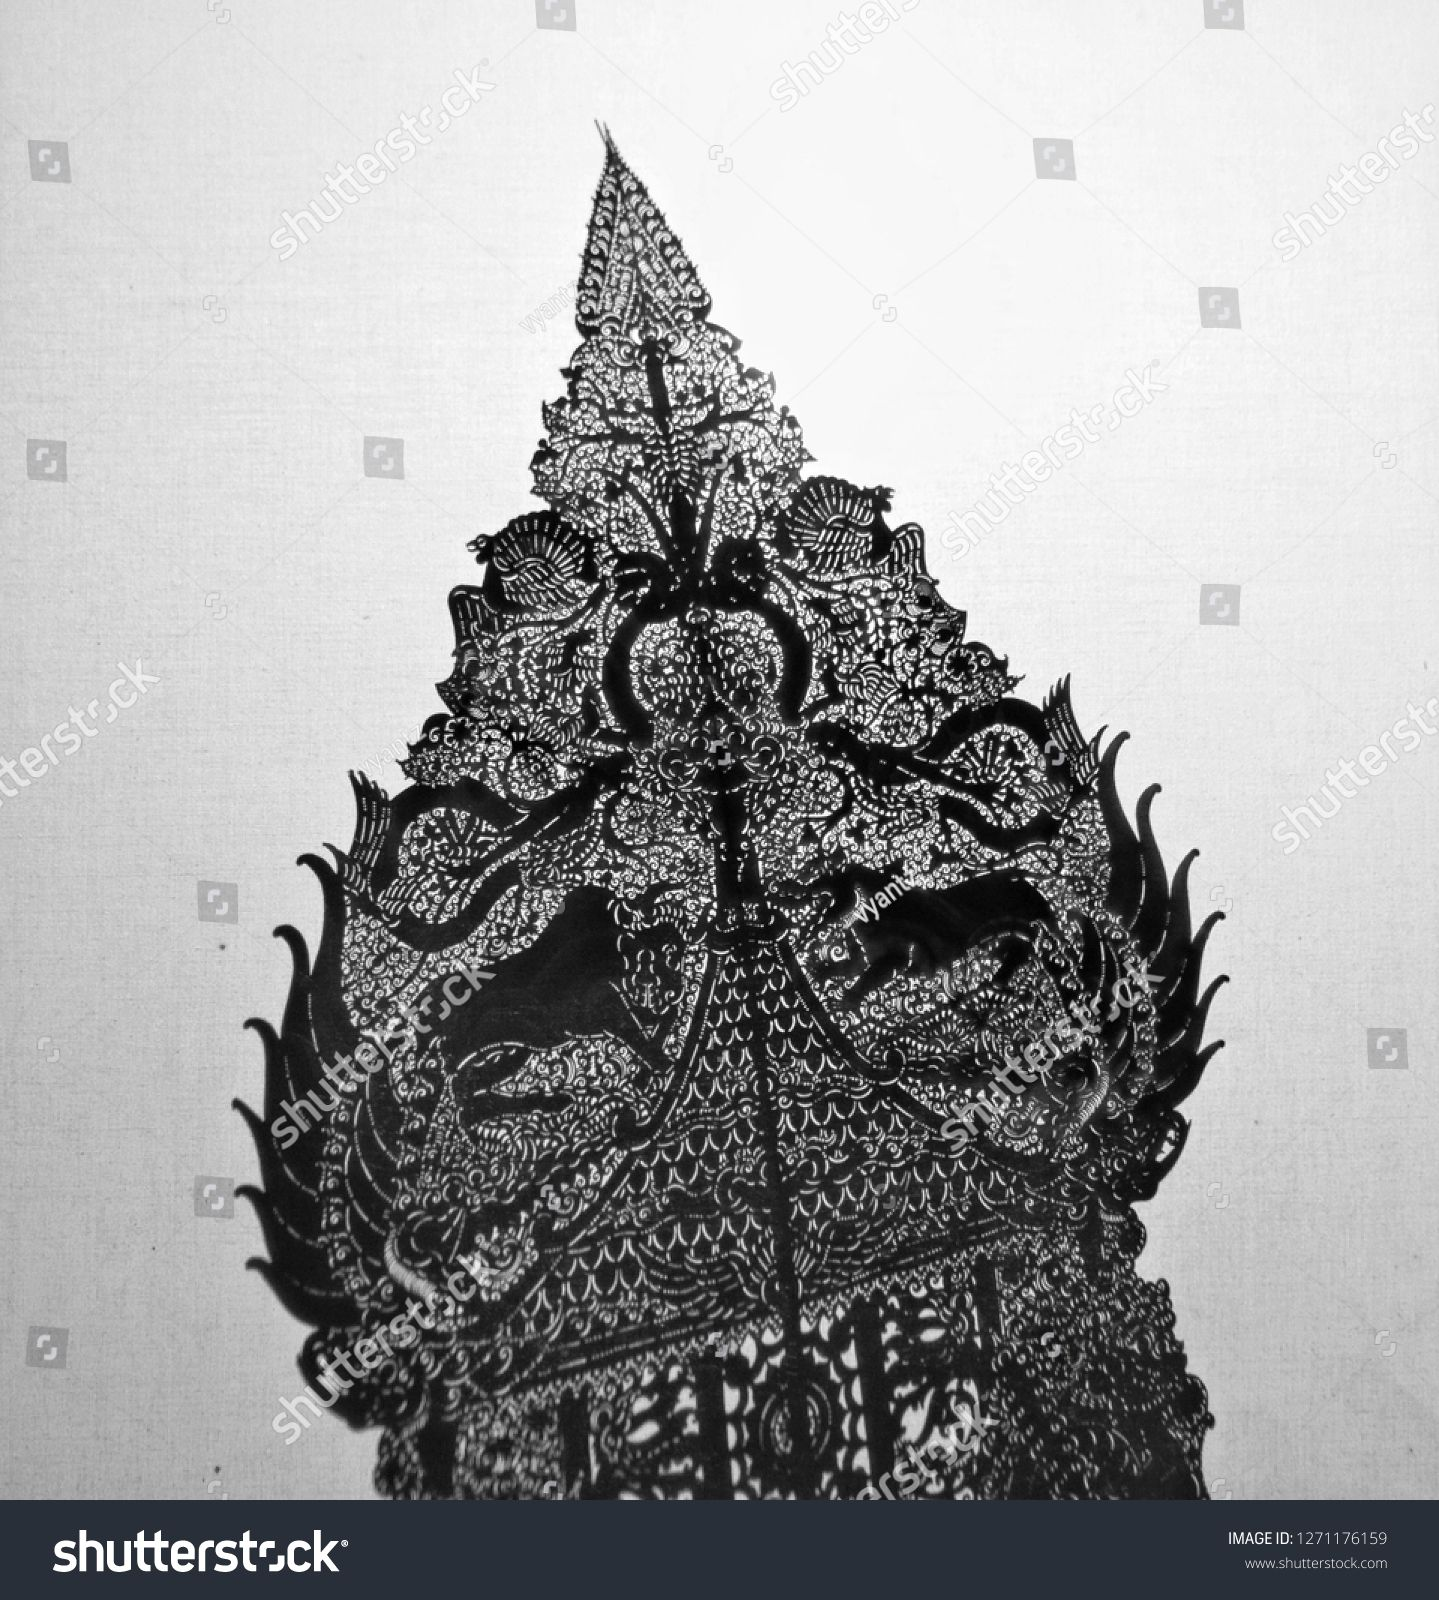 Wayang Indonesia Culture Wayang Arts Indonesia Bnw Background Stock Photos Royalty Free Stock Photos Royalty Free Photos